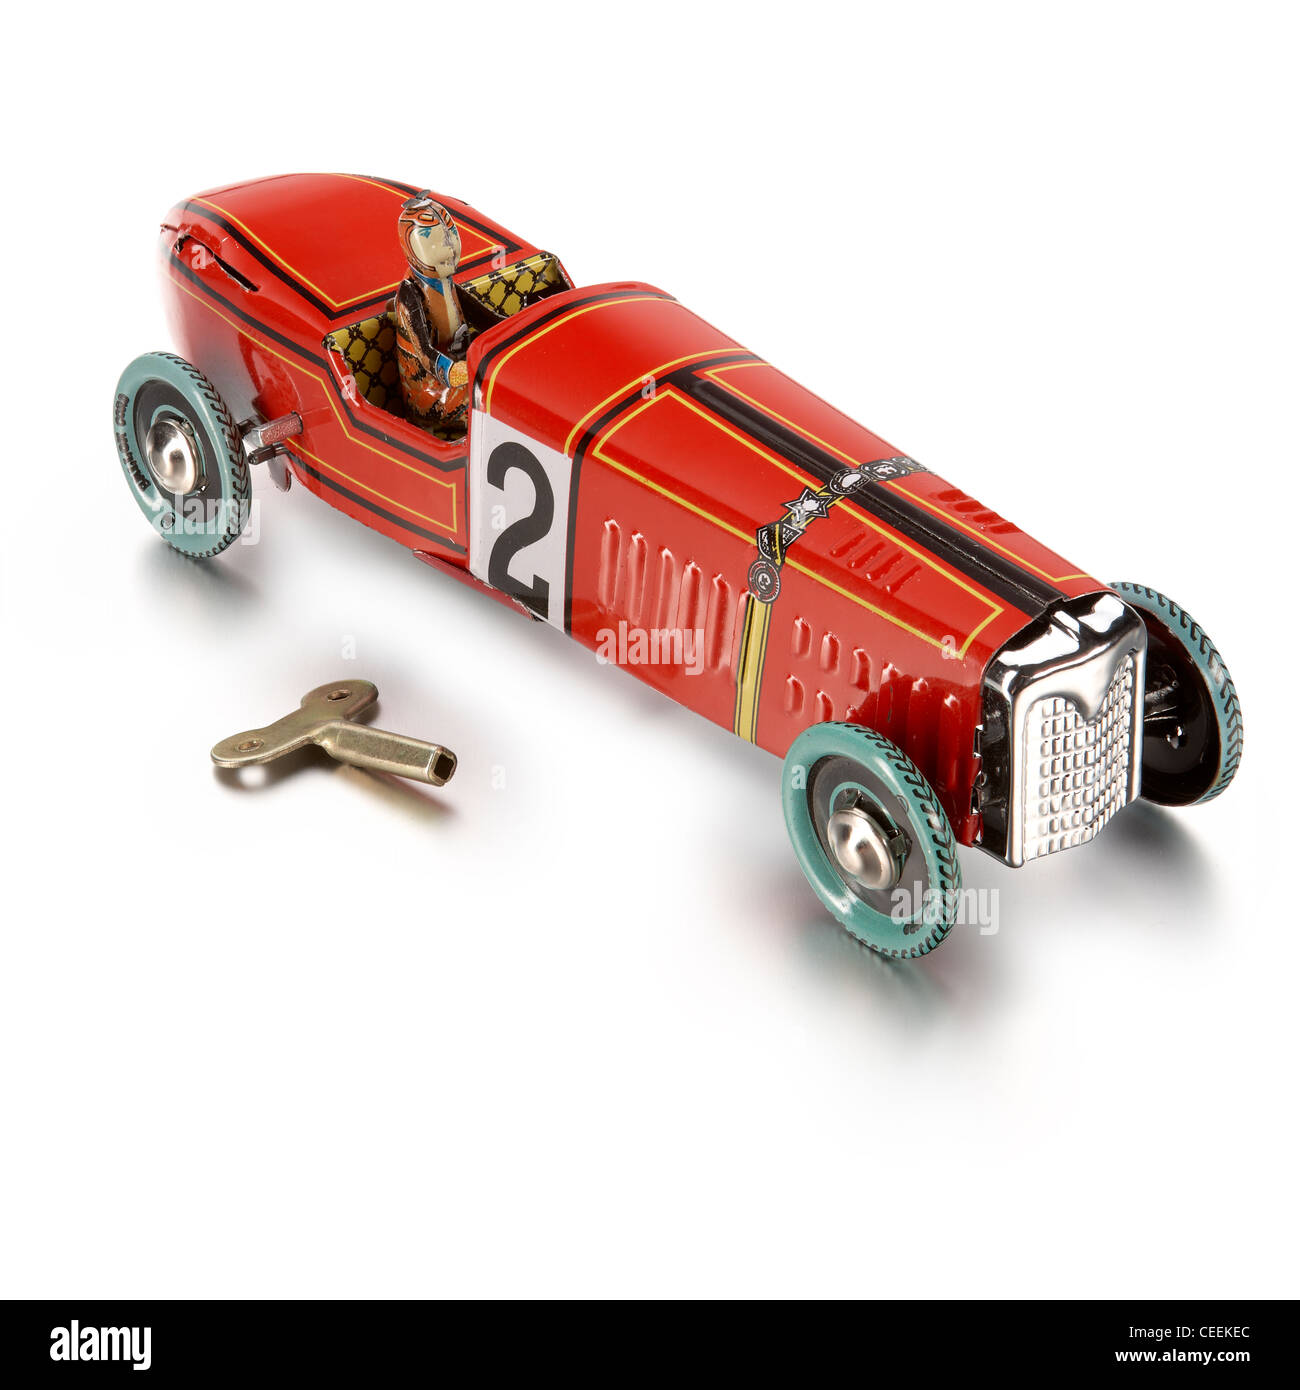 wind up tin toy racing car - Stock Image